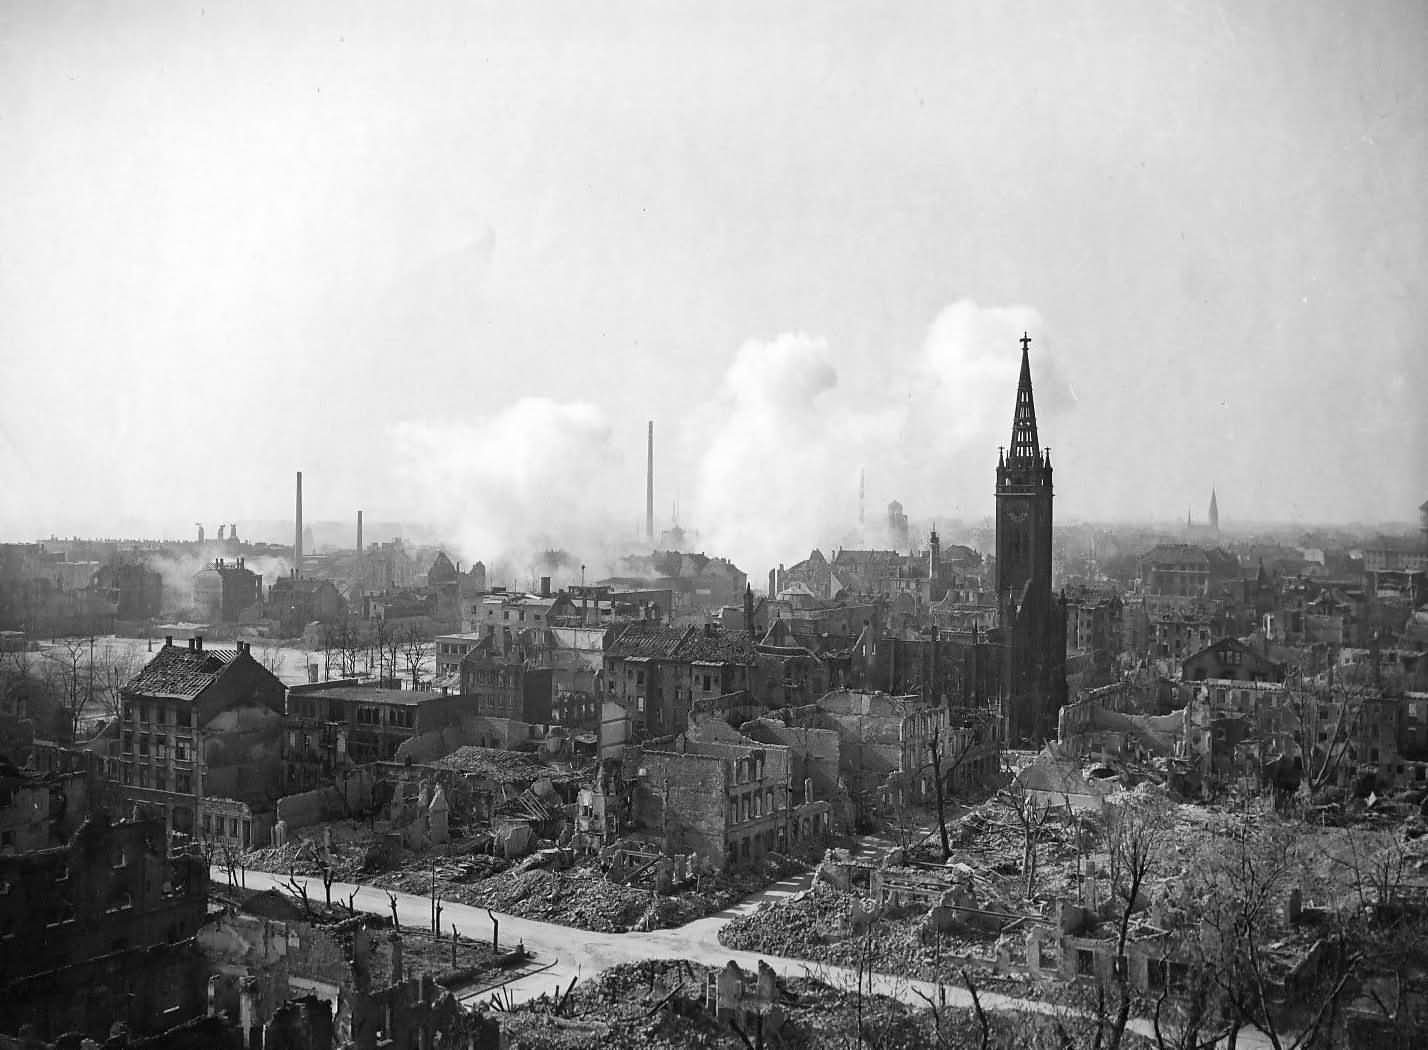 7th Army Shelled In Ruins Ludwigshafen Germany 1945